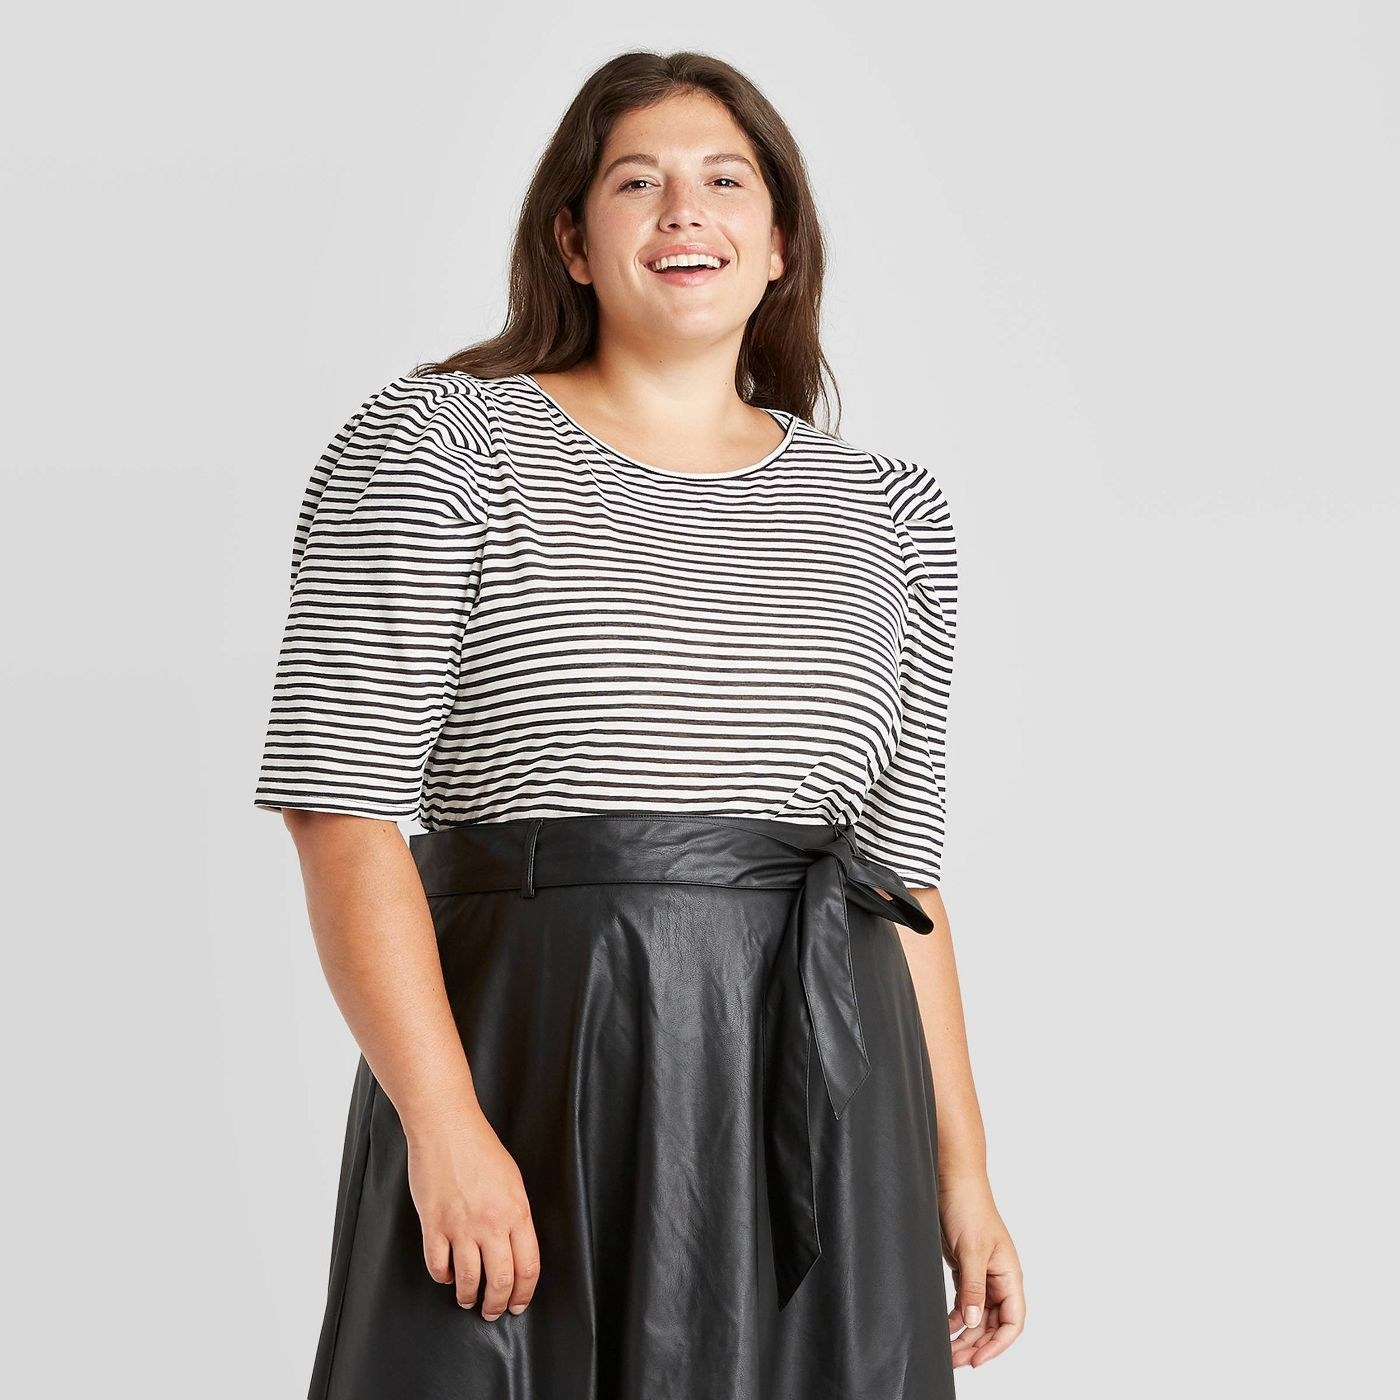 Model wearing black and white striped shirt